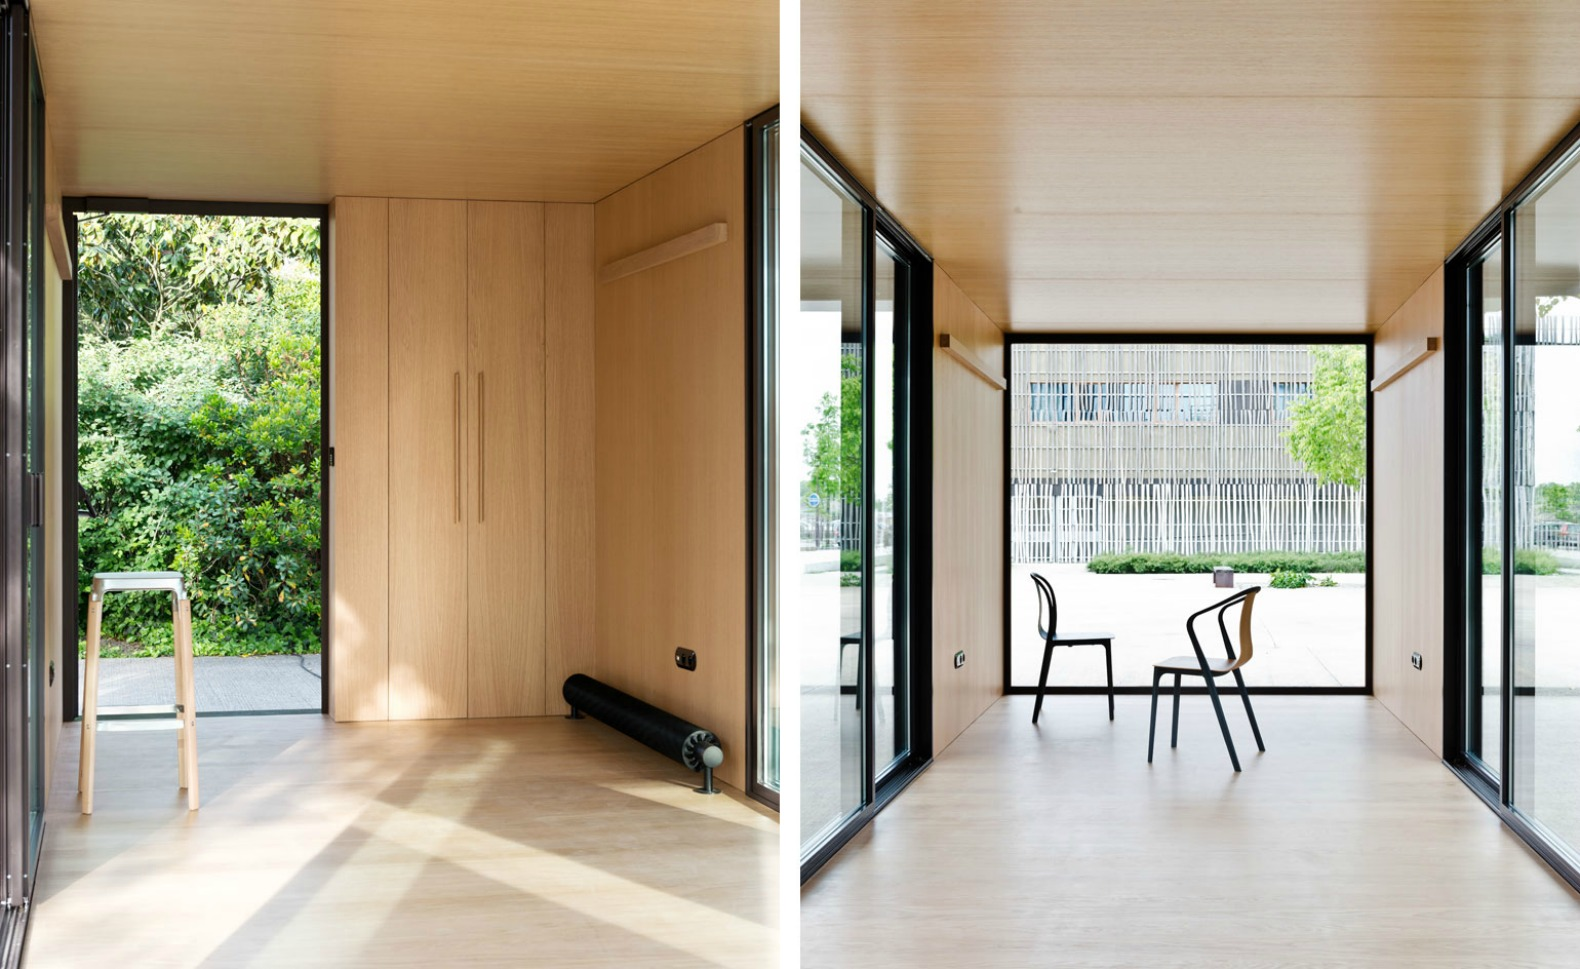 Compact container Kiosque can be embled in three hours flat ... on compact gardening, compact restaurant design, compact bathroom design, compact living room design, compact furniture design, compact office design, compact kitchen design,